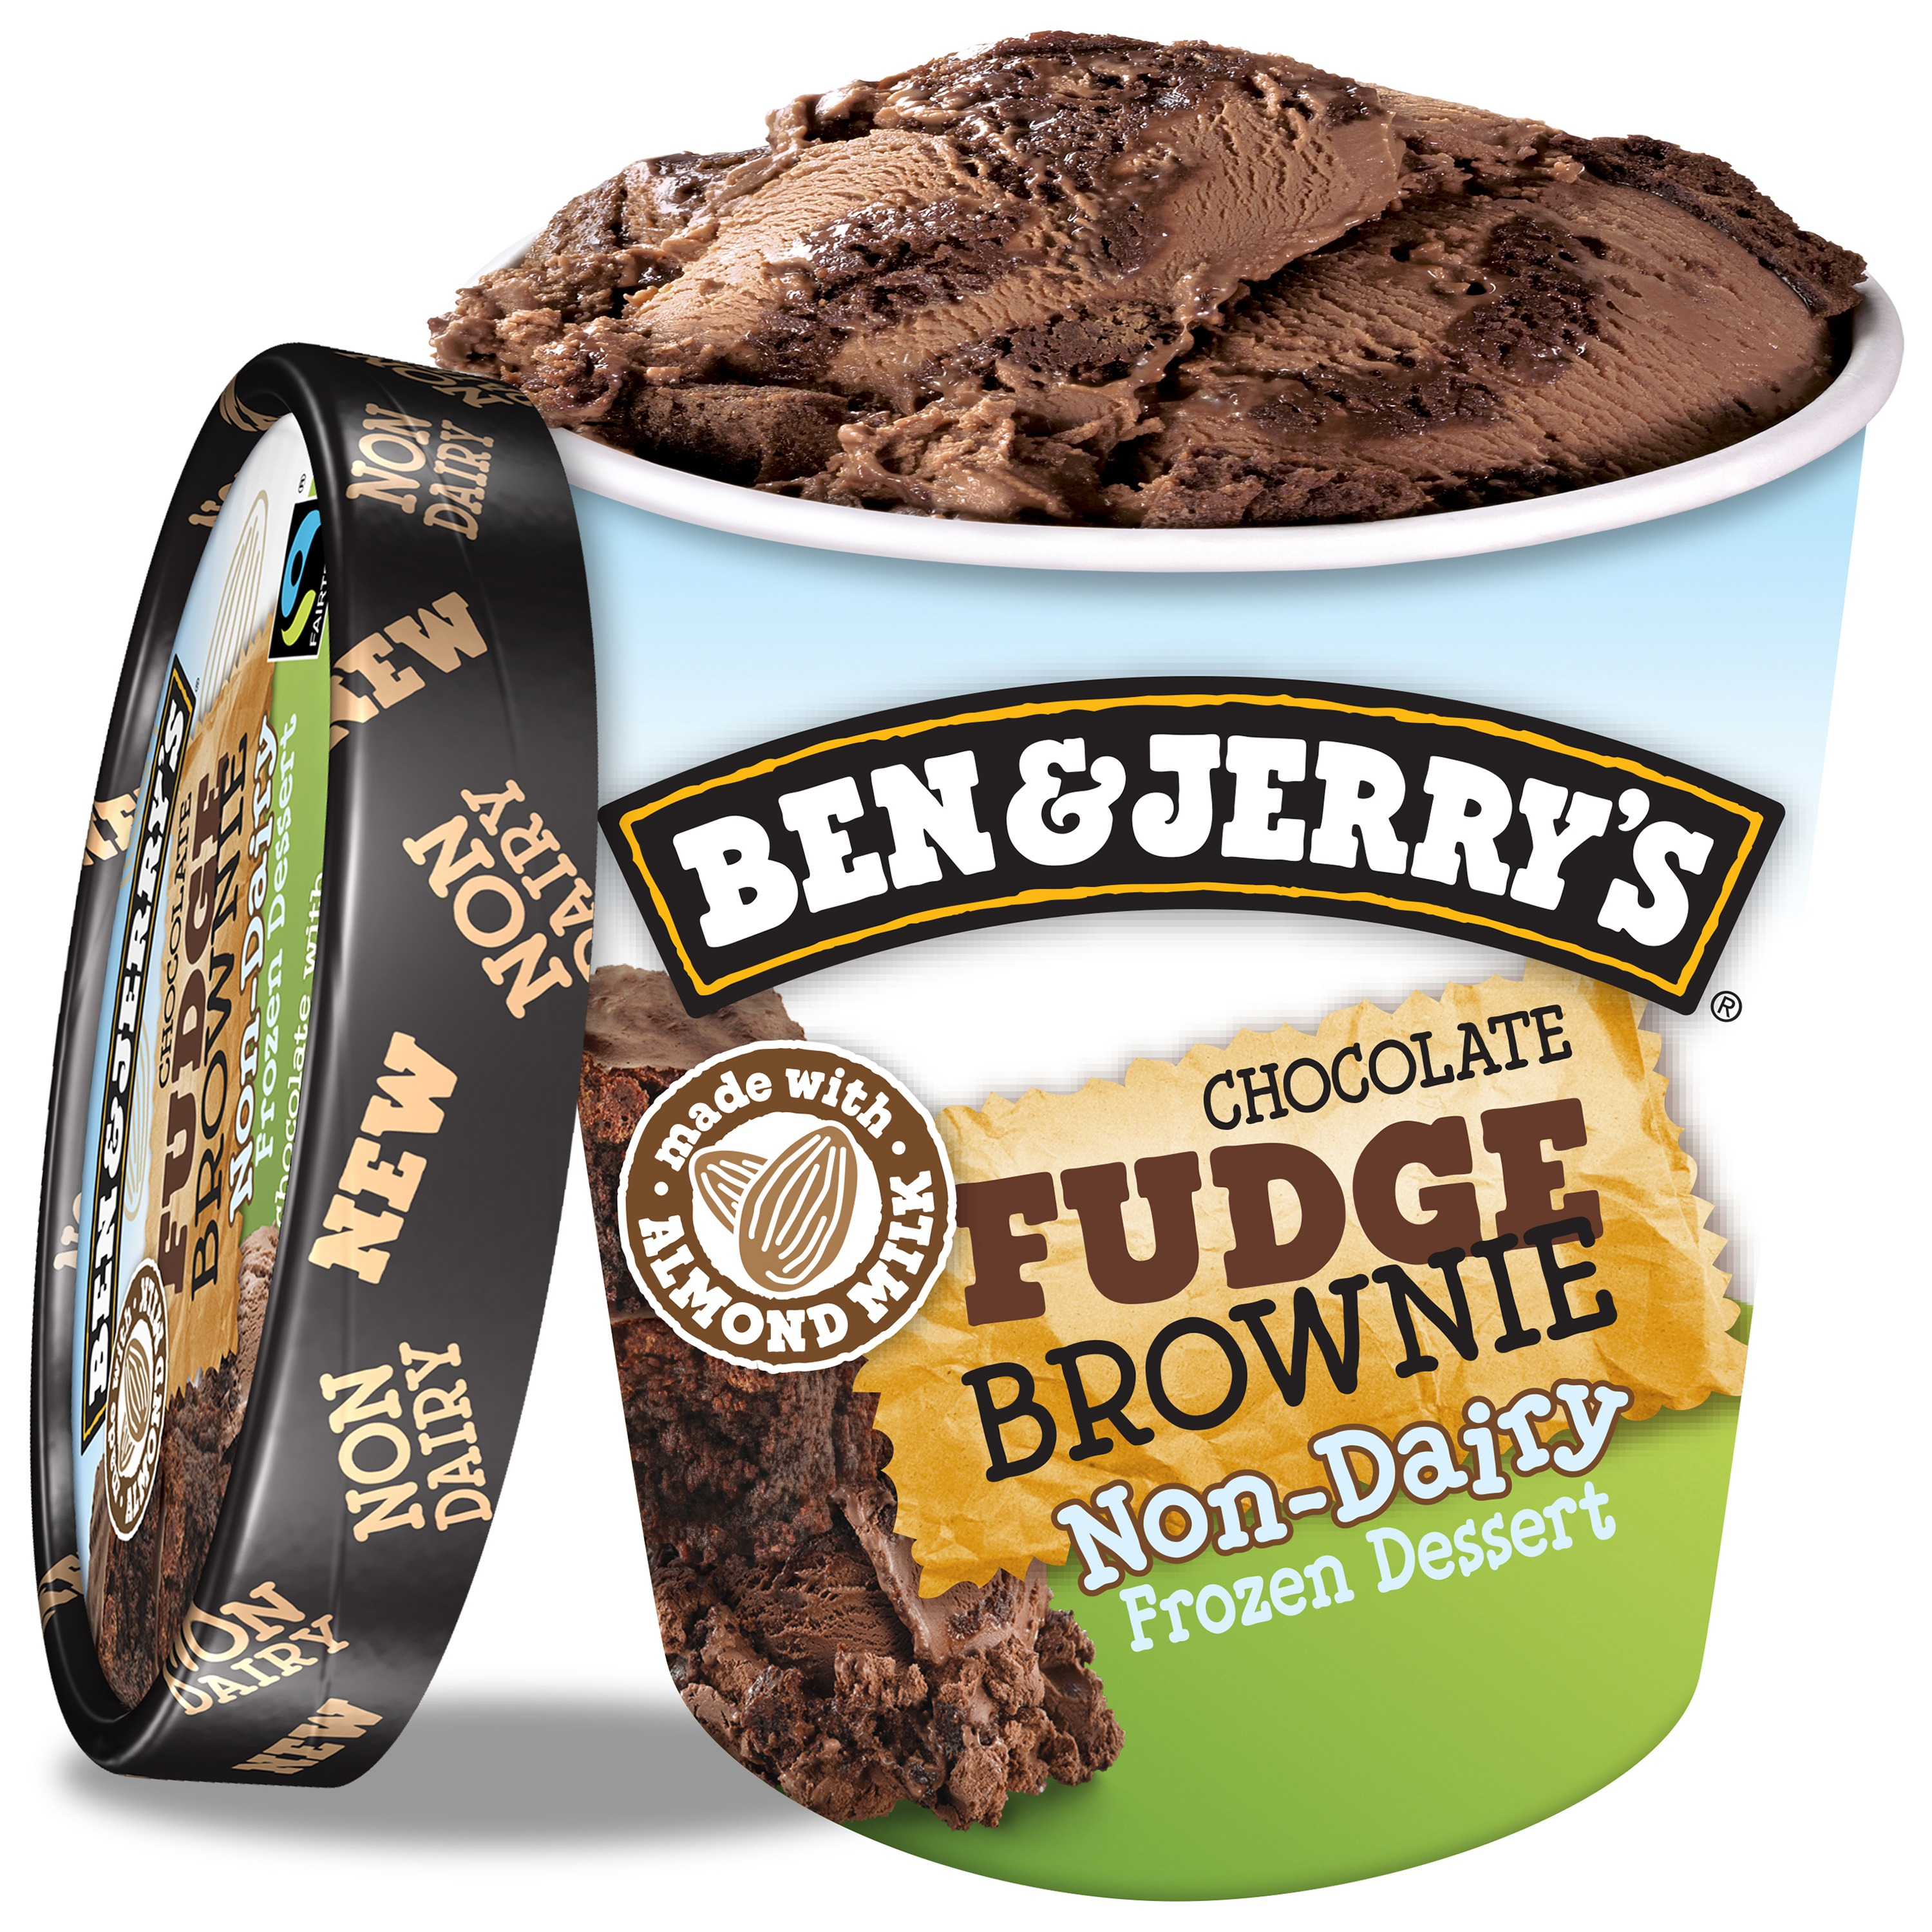 Ben & Jerry's Non-Dairy Chocolate Fudge Brownie 16 oz